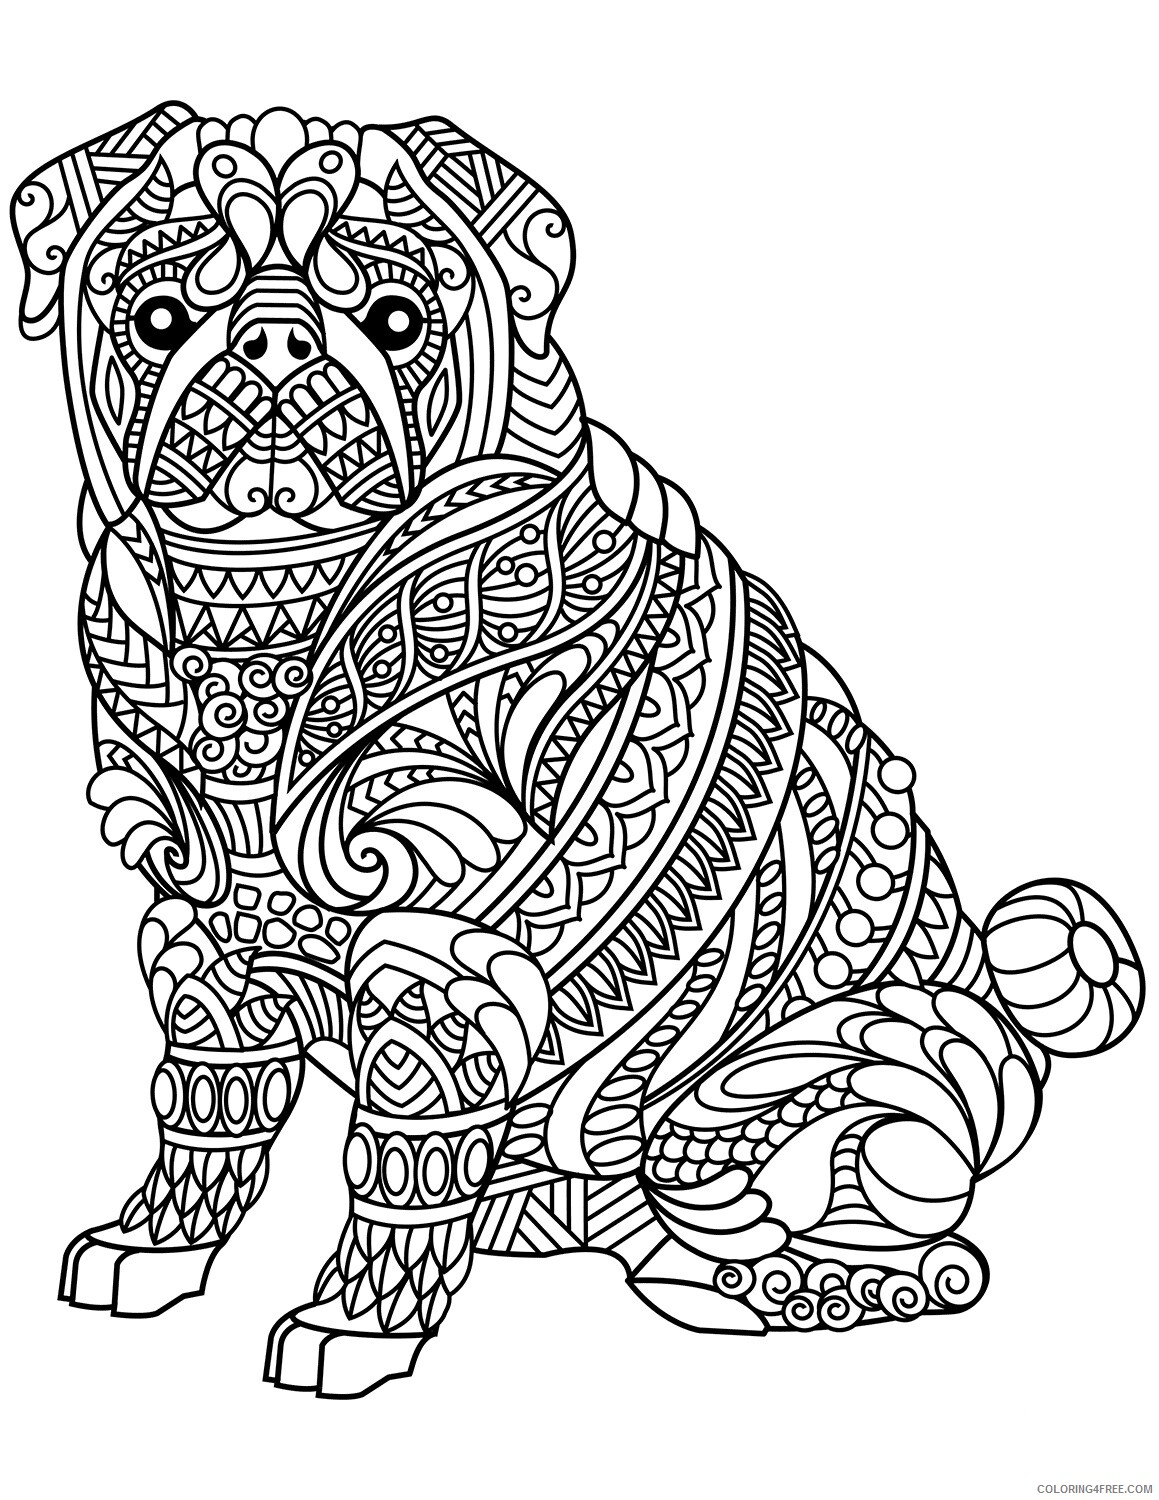 Adult Dog Coloring Pages Complex Zen Dog for Adults Printable 2020 225 Coloring4free